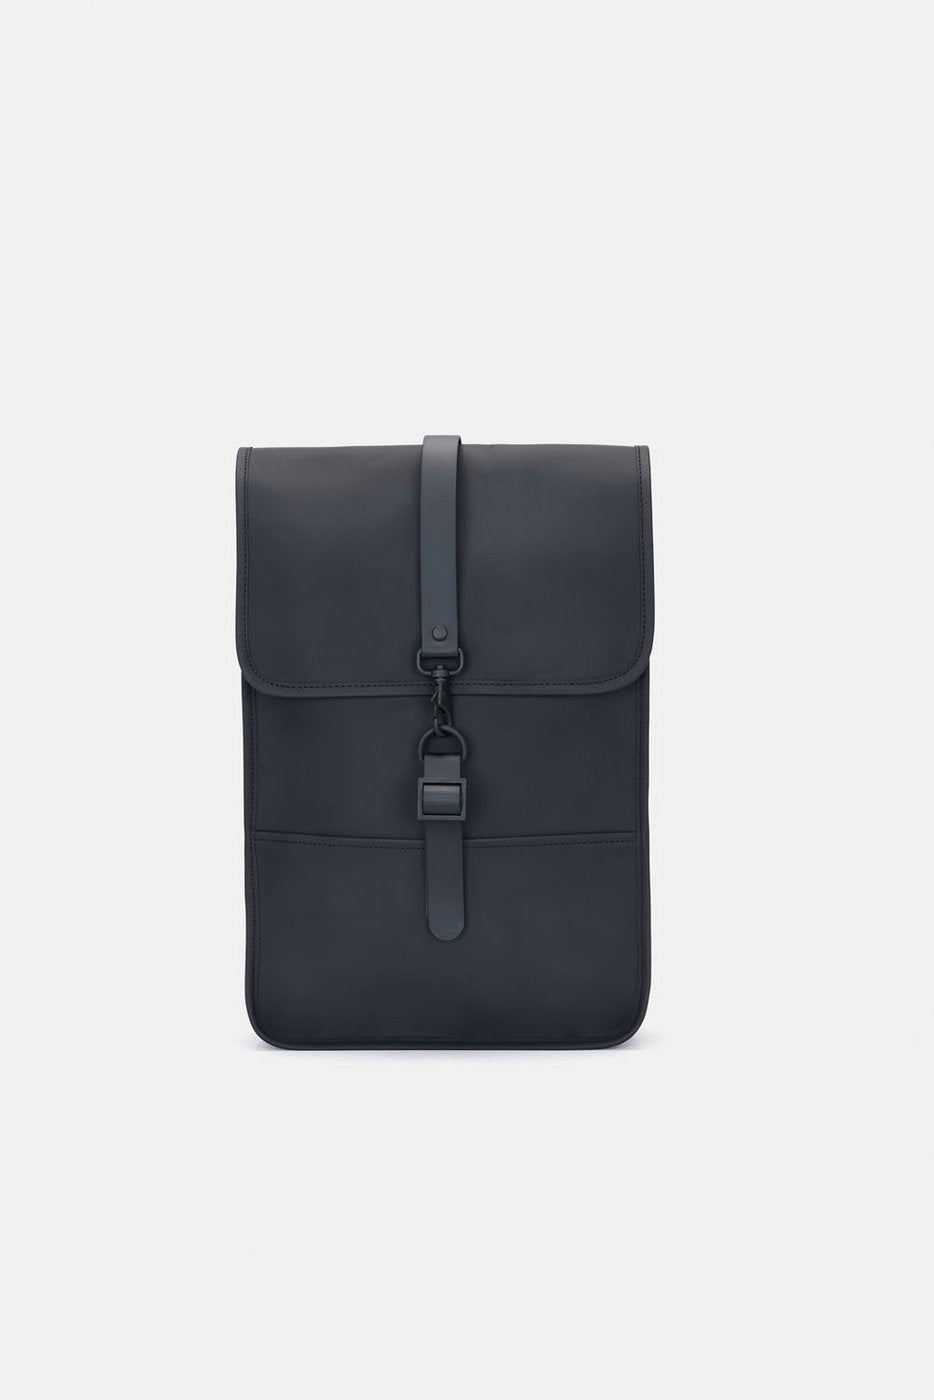 Rains - Backpack Mini Black